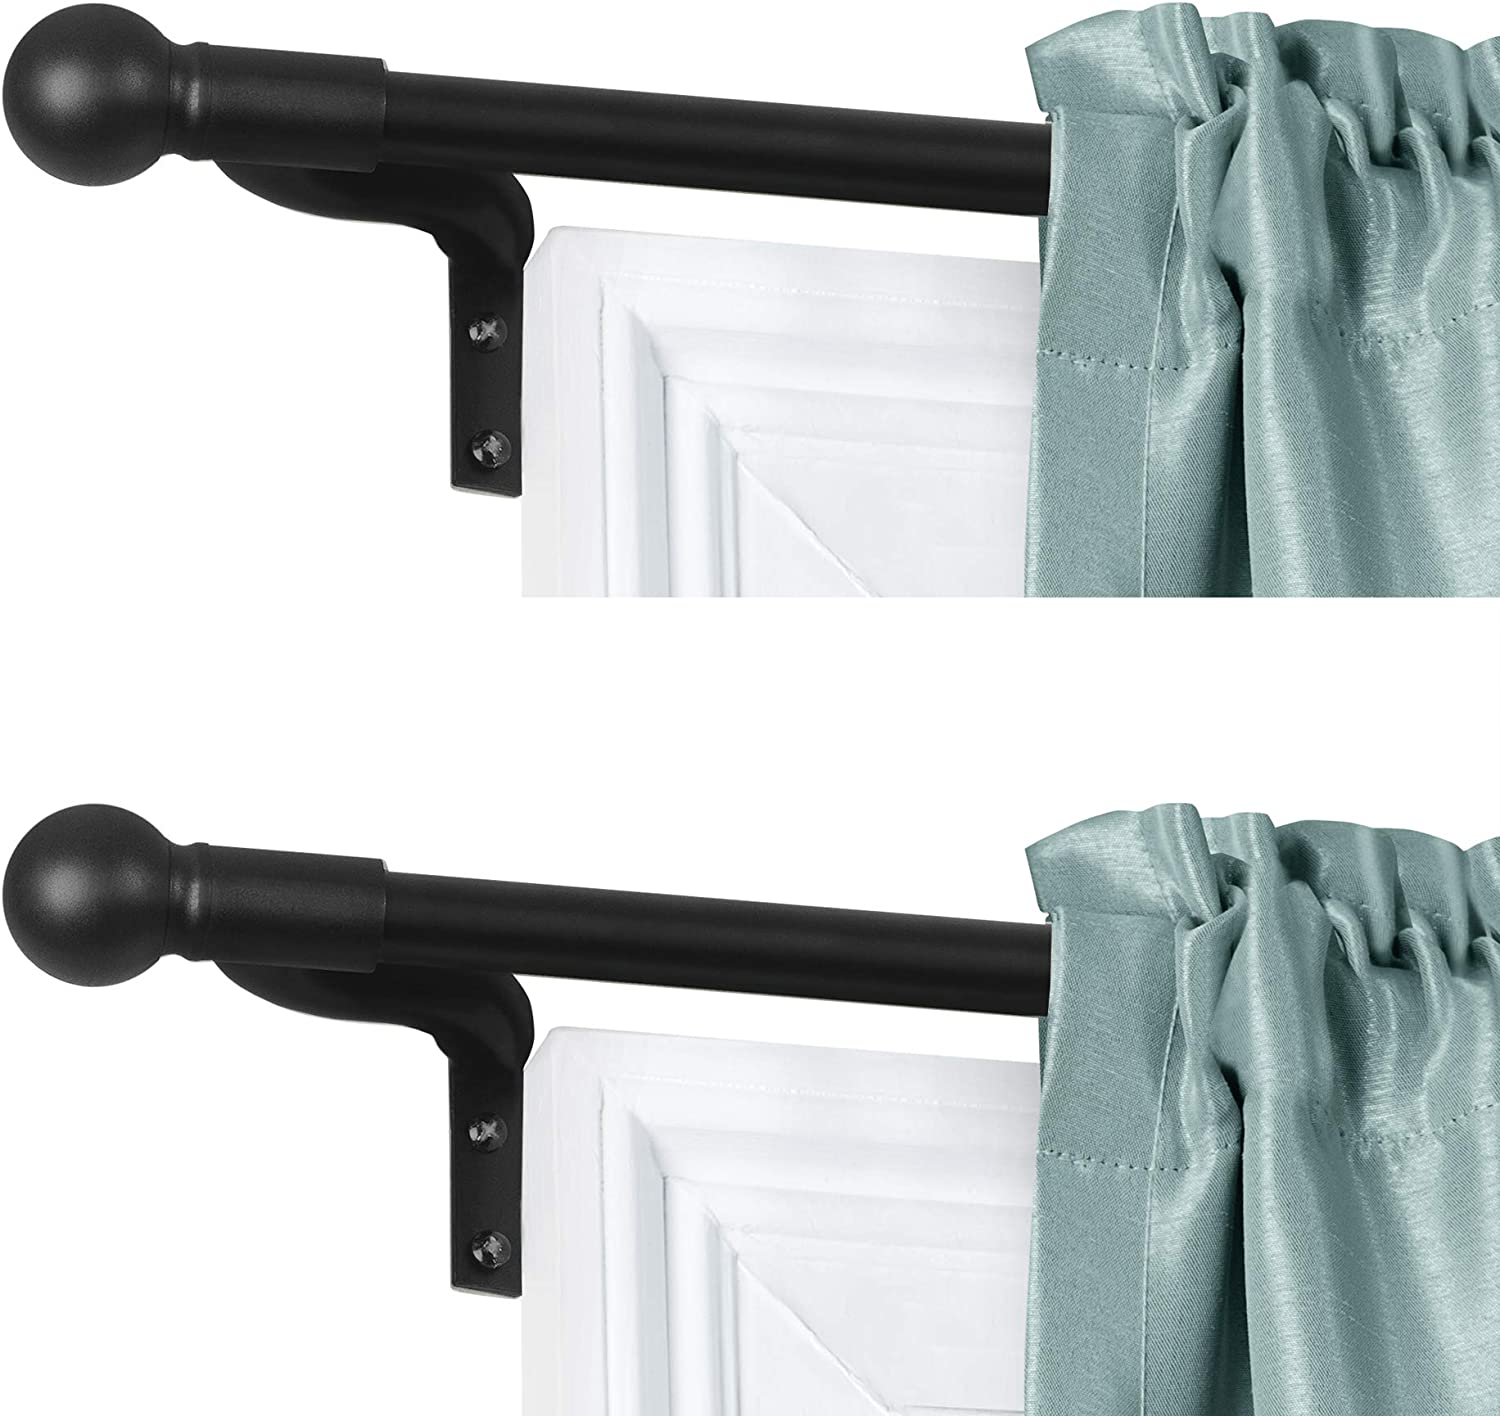 Zenna Home, Black, Smart Measuring Easy Install Adjustable Café Window, 18 to 48 in, with Ball Finials, 2-Pack of Rods